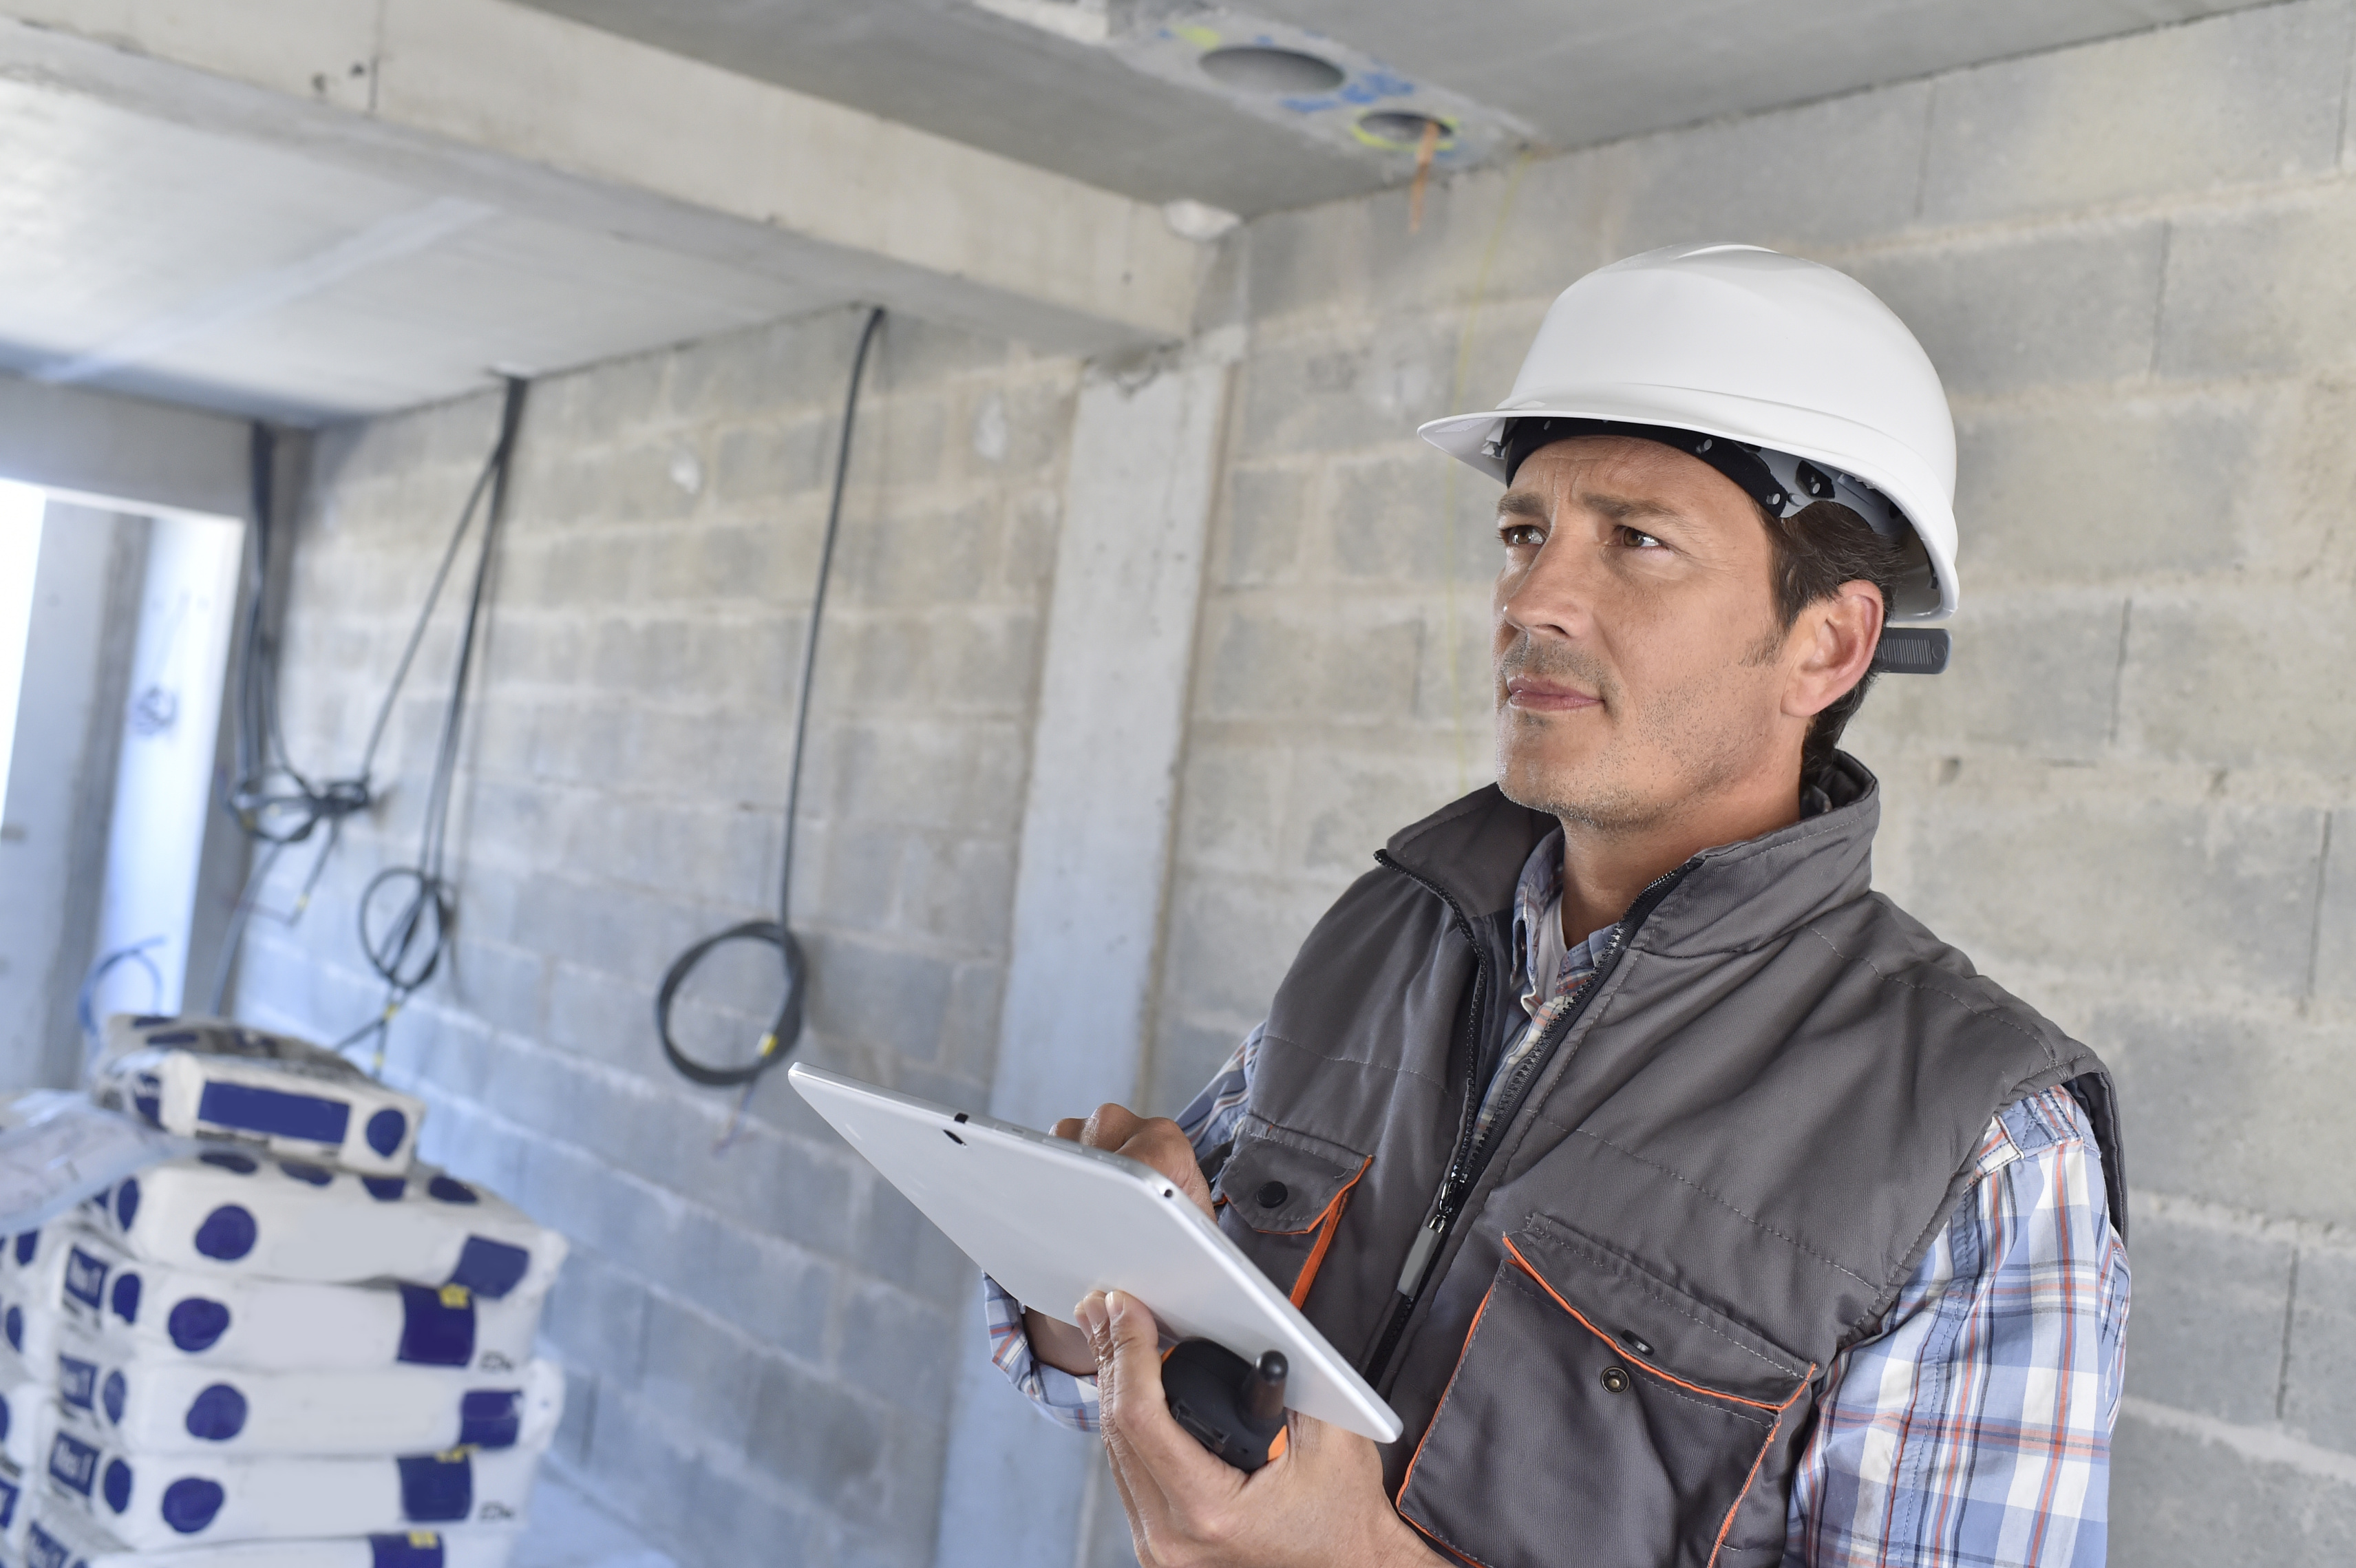 construction-manager-using-tablet-on-building-site